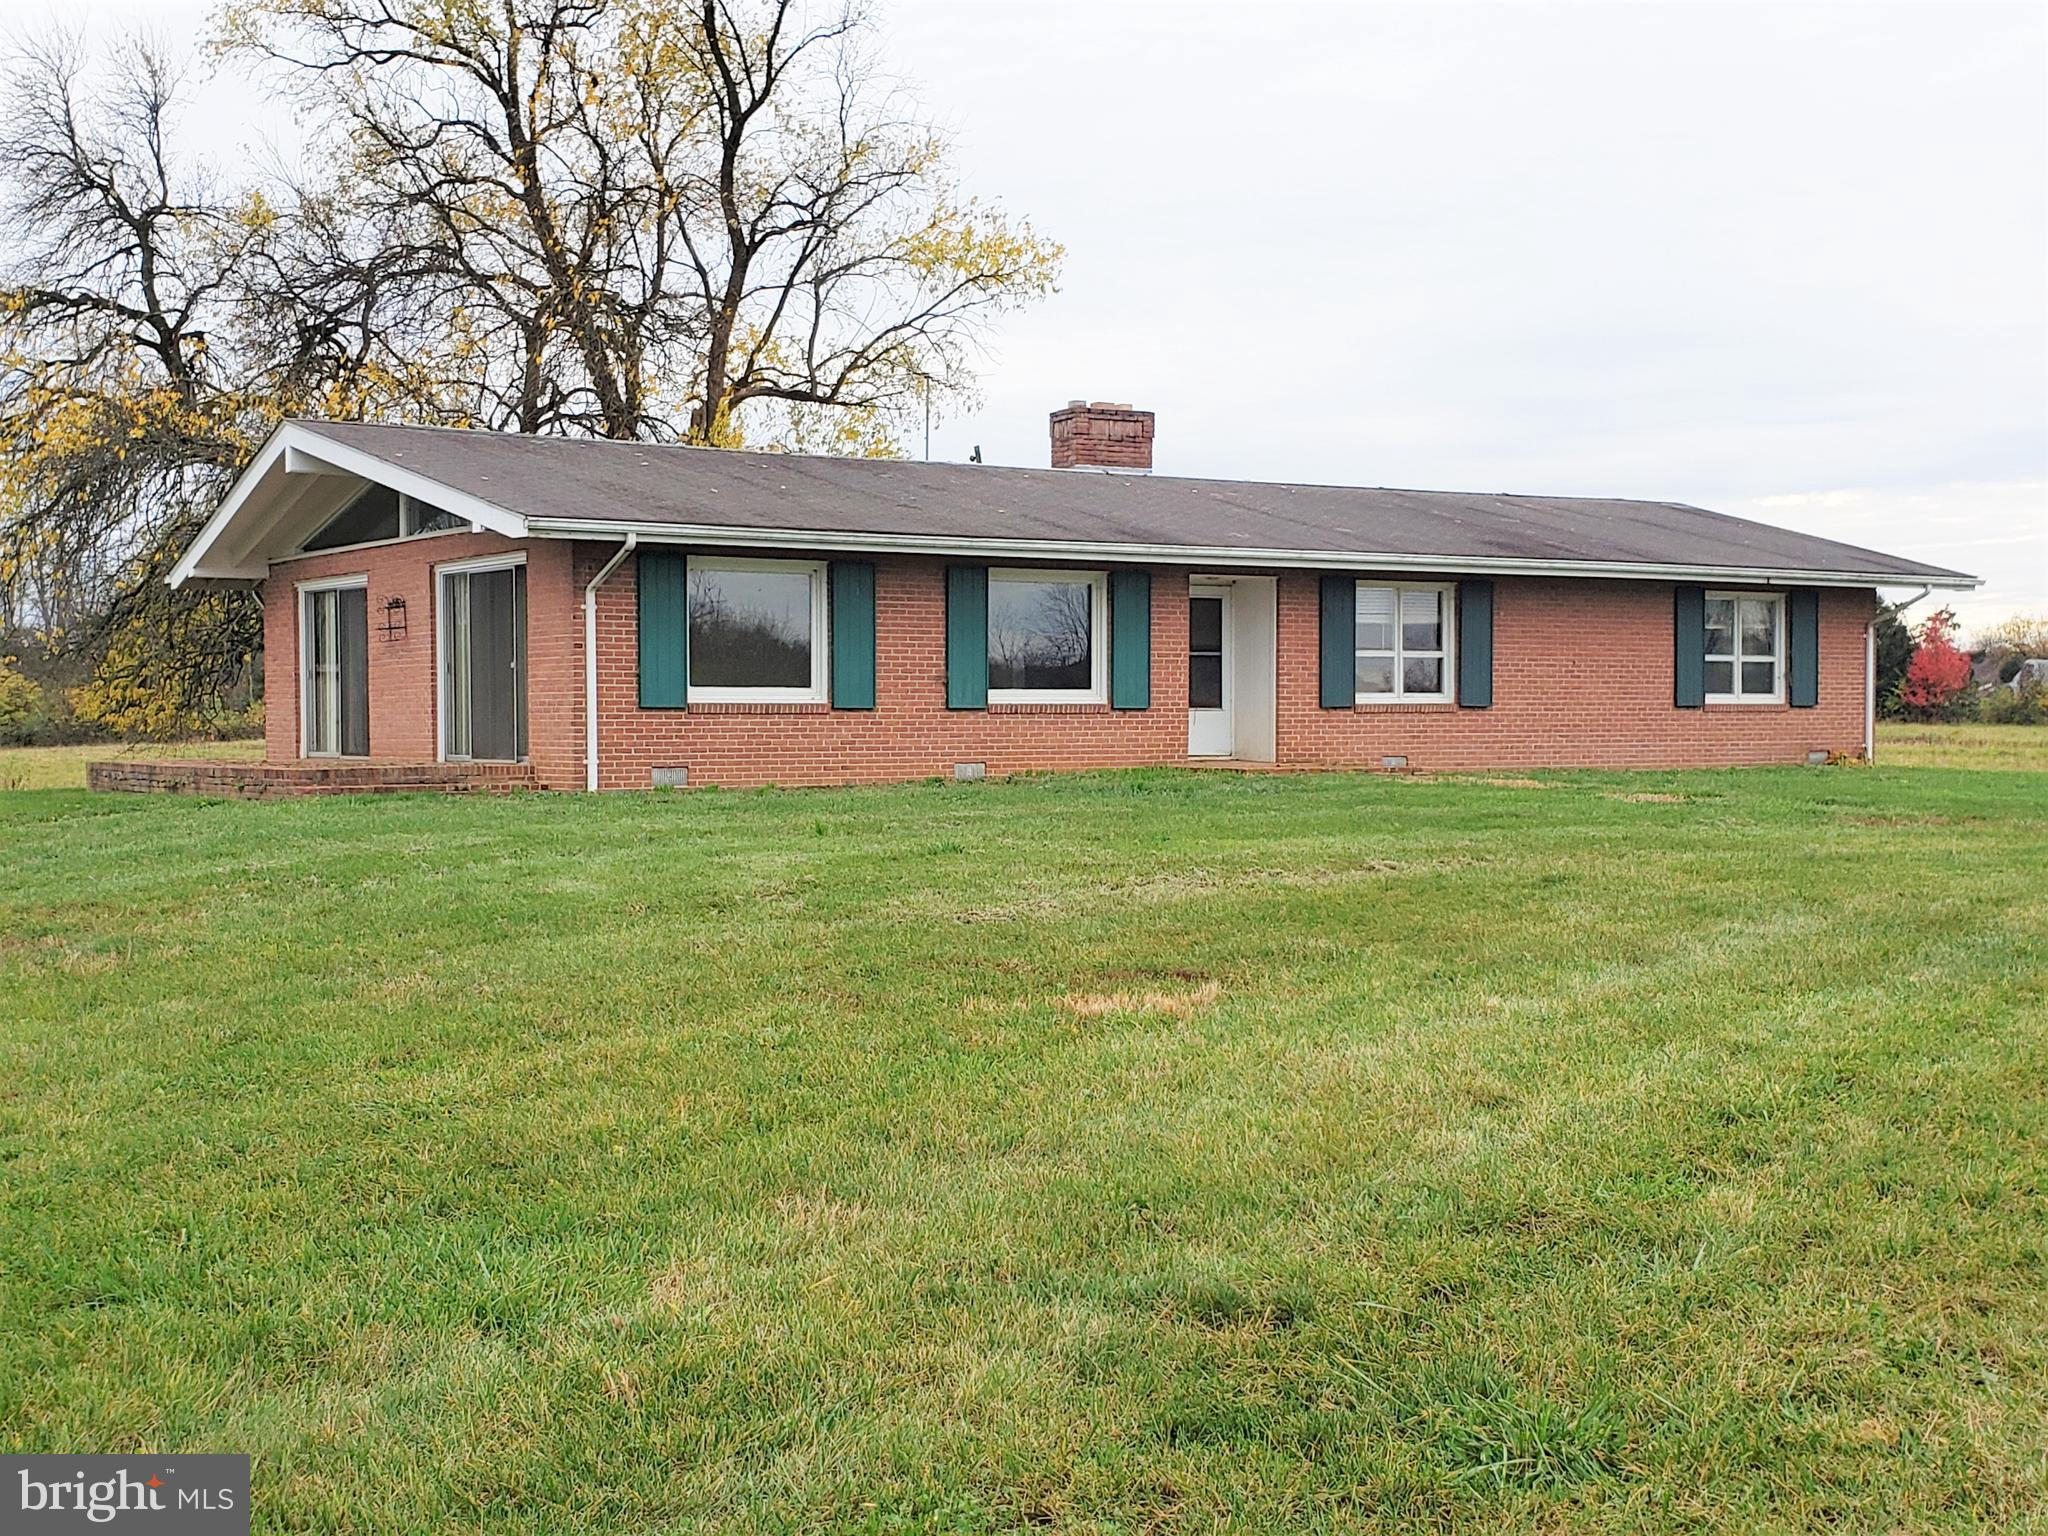 Outstanding Clarke County location, less than a mile from small town of Boyce (with post office, ban